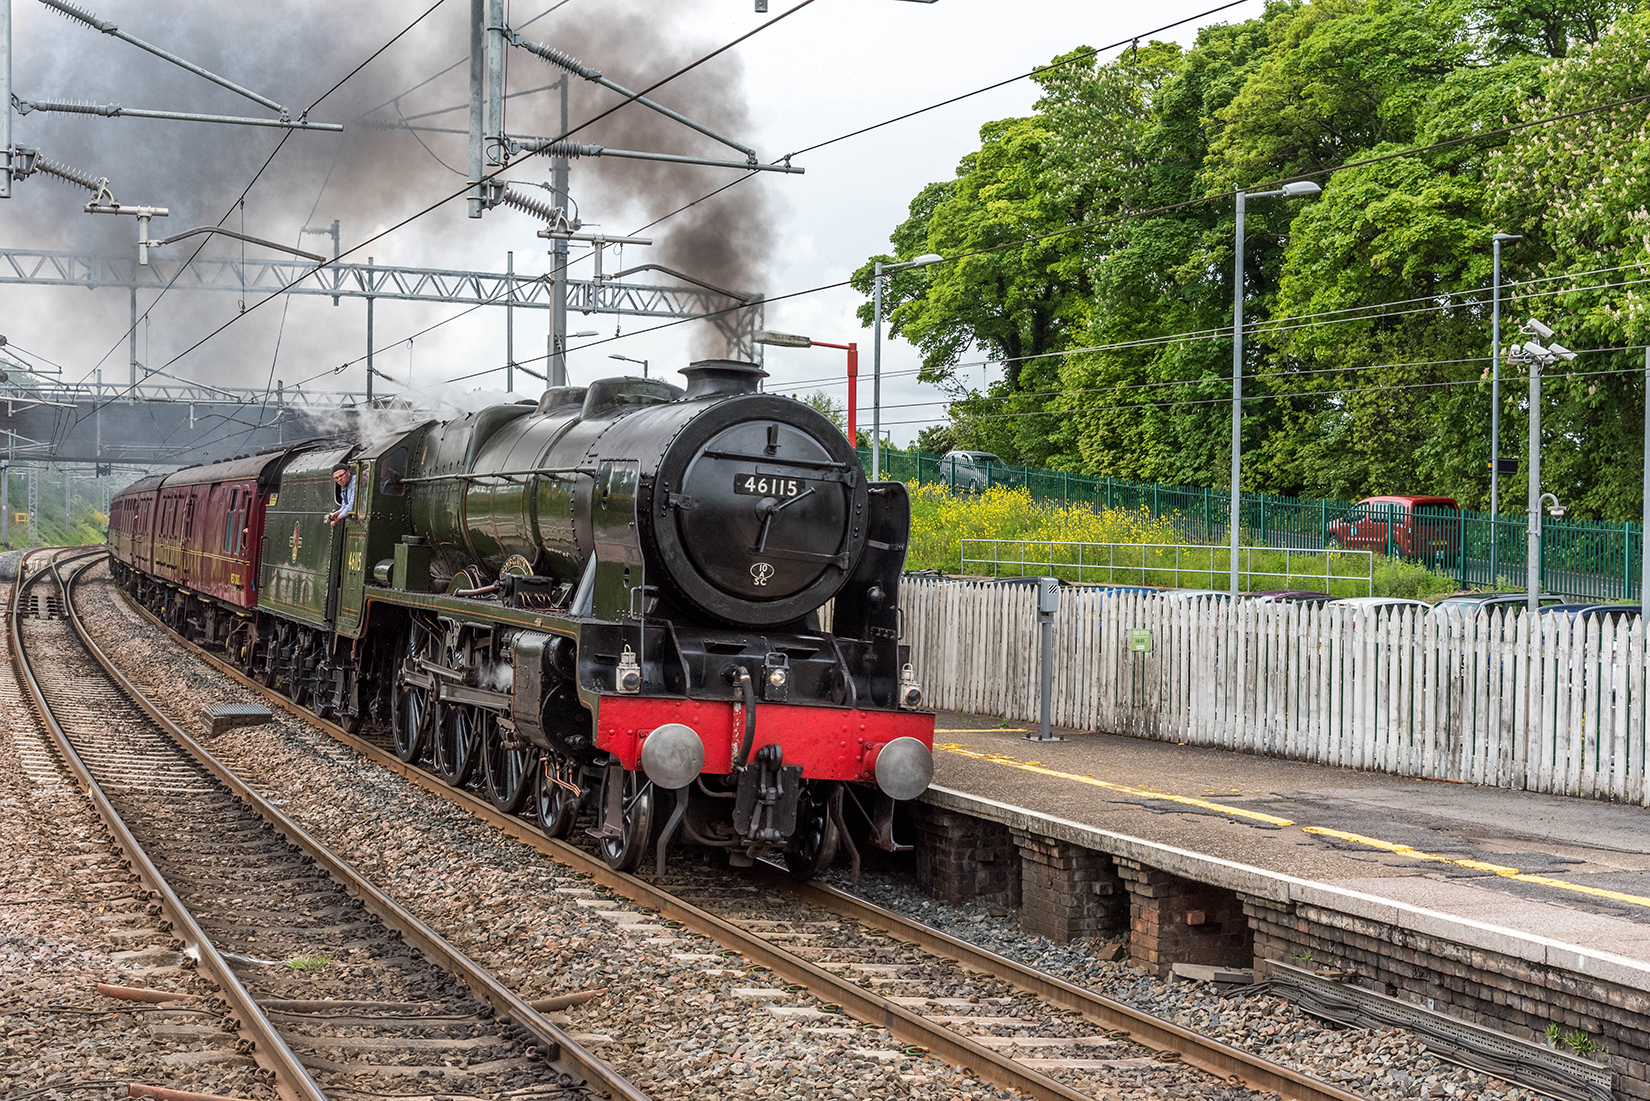 Royal Scot class 46115 'Scots Guardsman' thundering through Oxenholme station